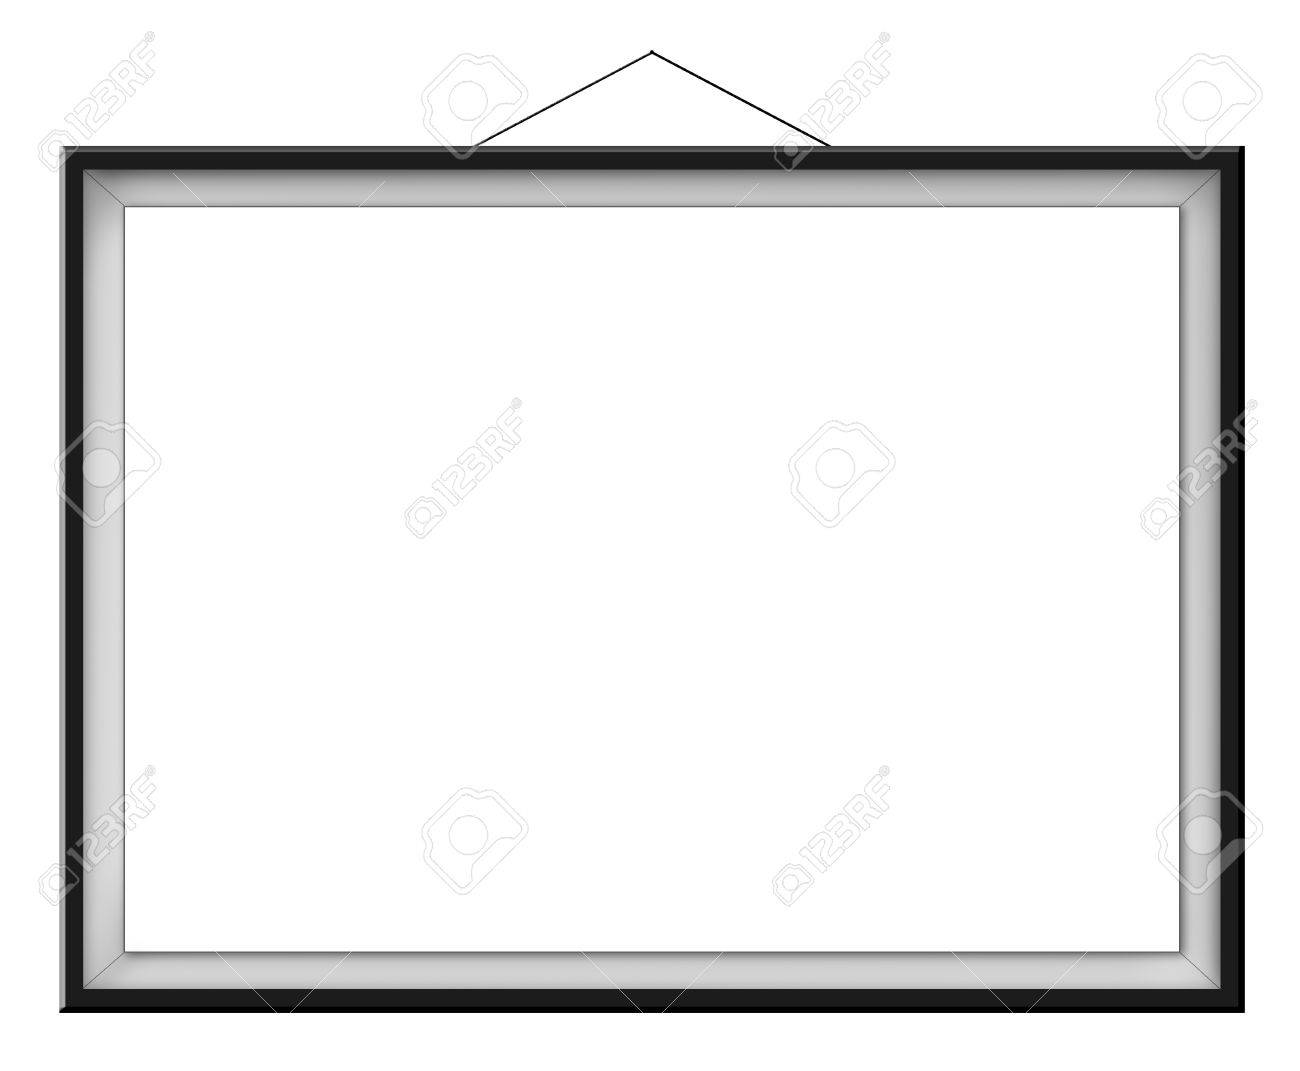 Blank Horizontal Painting In Black Frame Hanging On The Wall ...